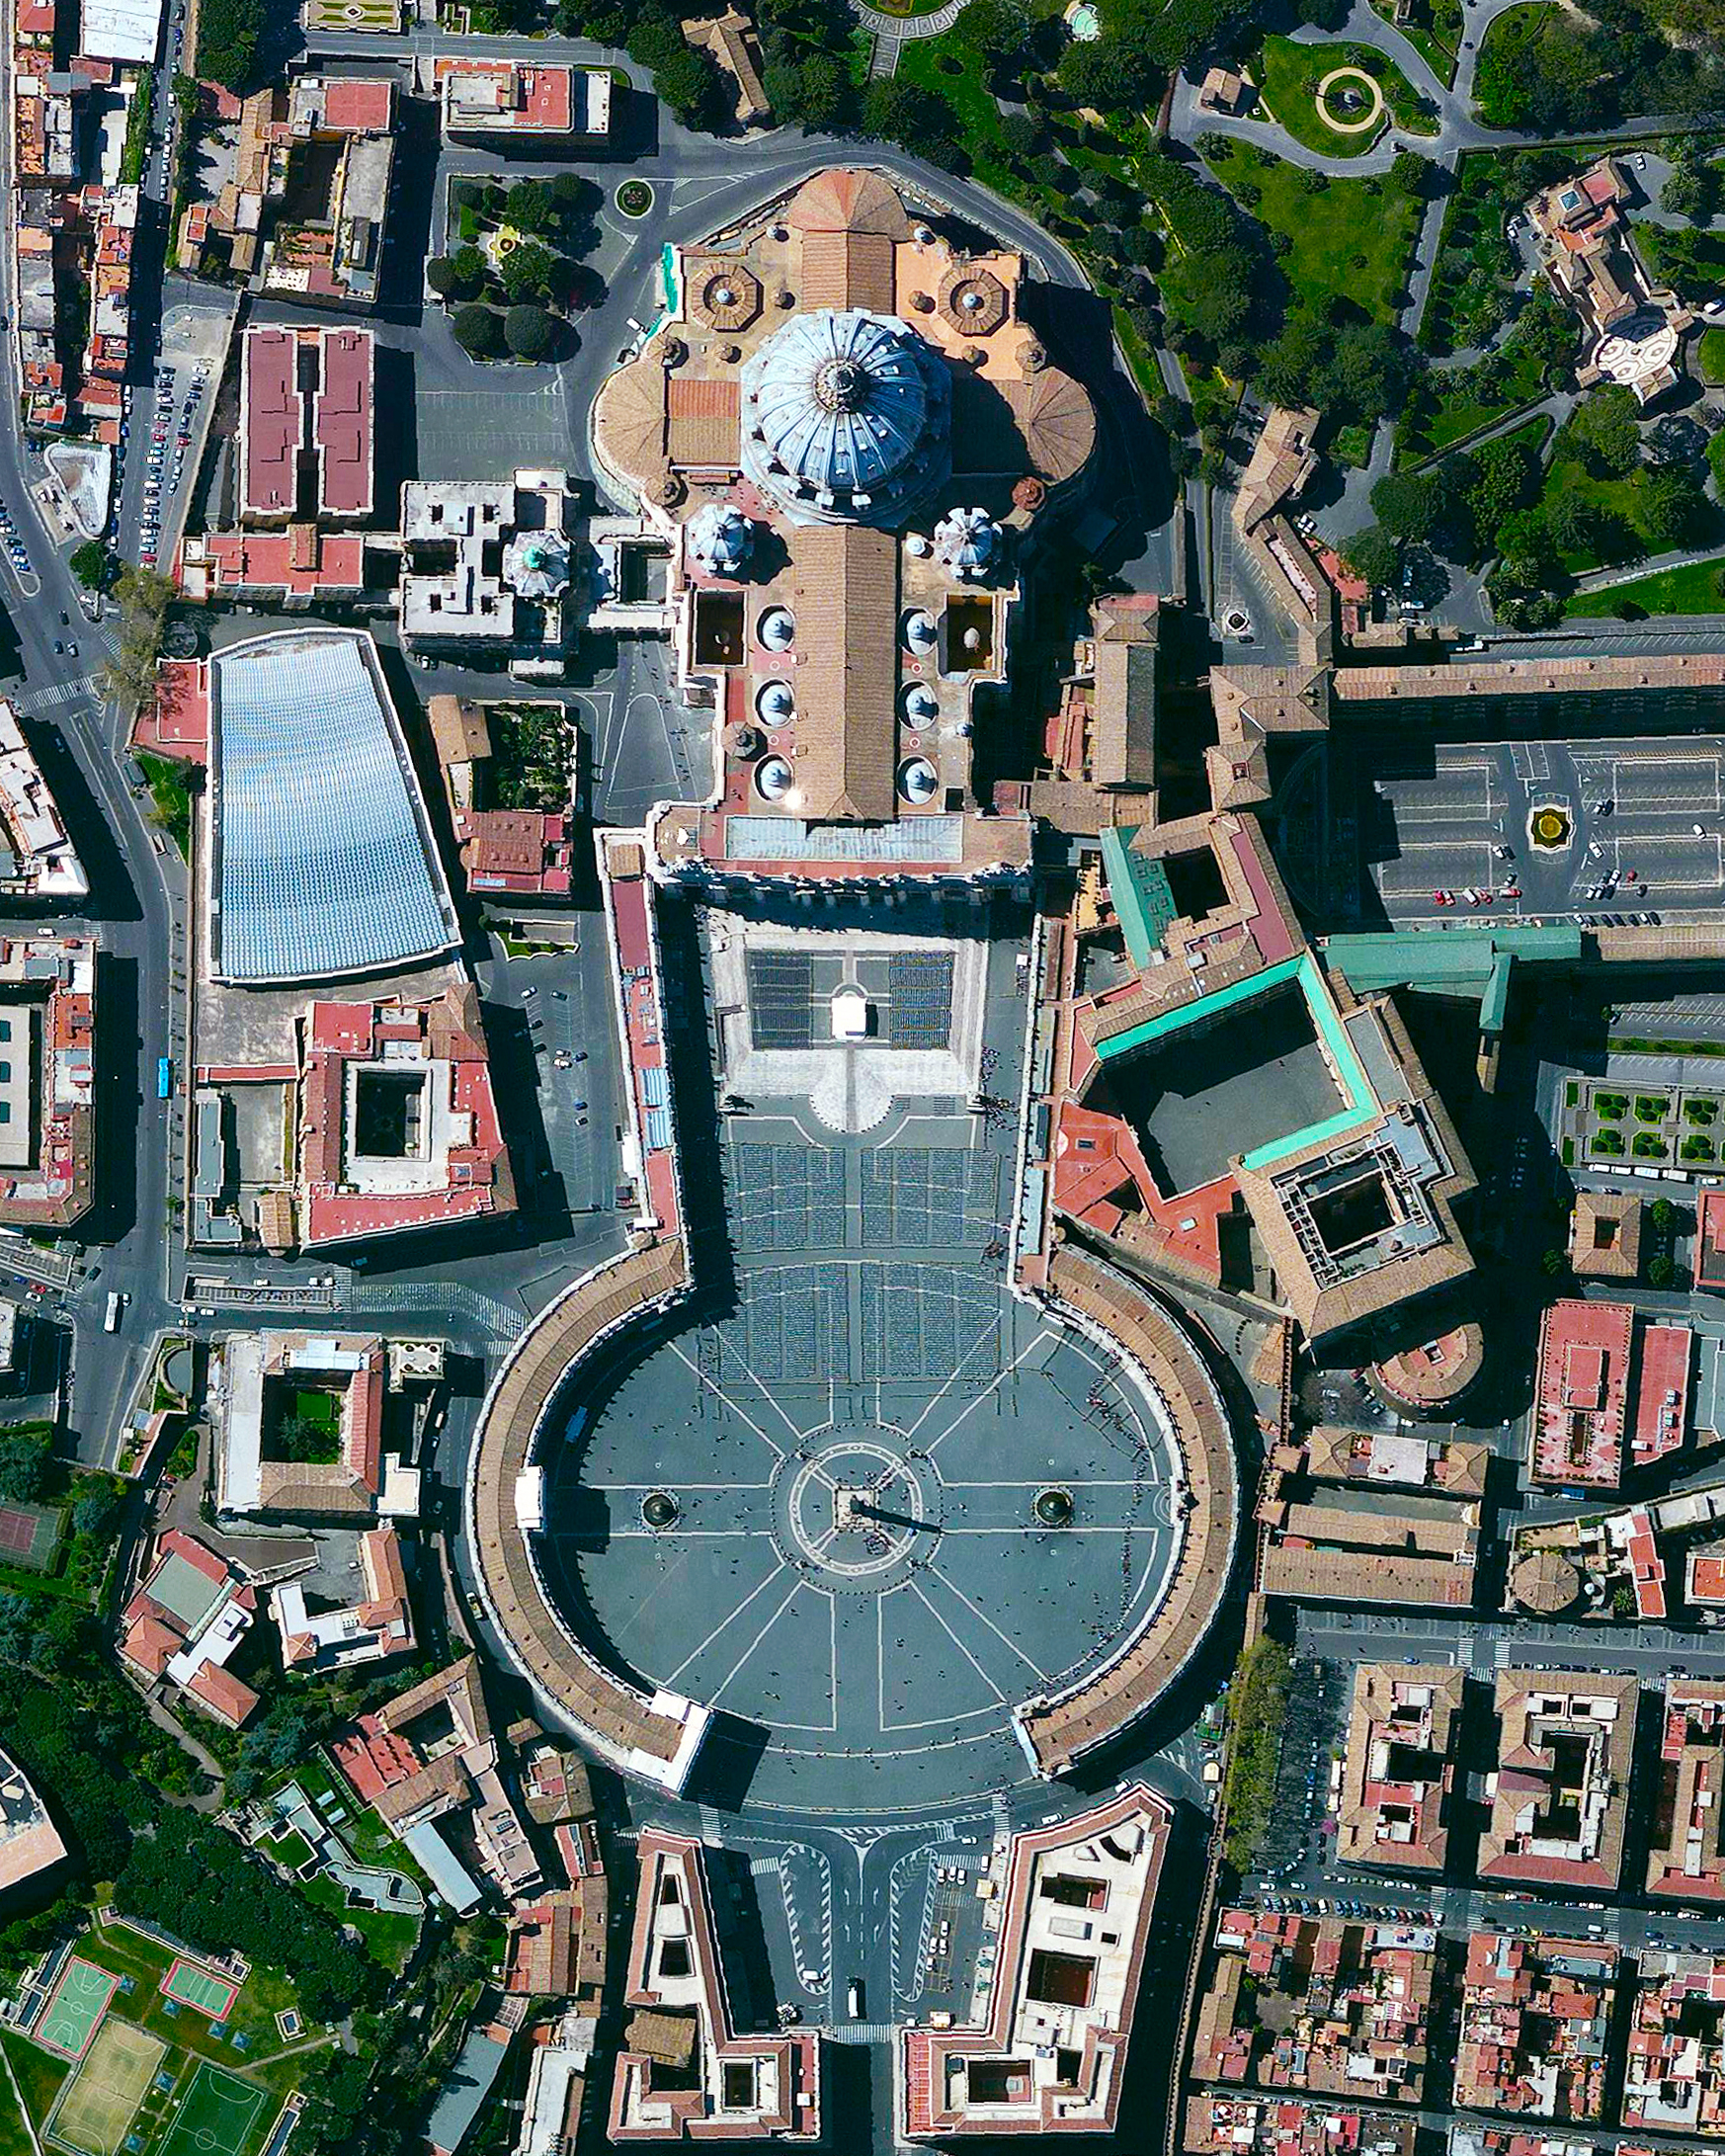 """Merry Christmas from Daily Overview! St. Peter's Basilica, located within Vatican City, is regarded as one of the holiest Catholic sites and one of the greatest churches in all of Christendom. And to everyone who unwrapped a copy of """"Overview"""" this morning, we hope you love it!"""